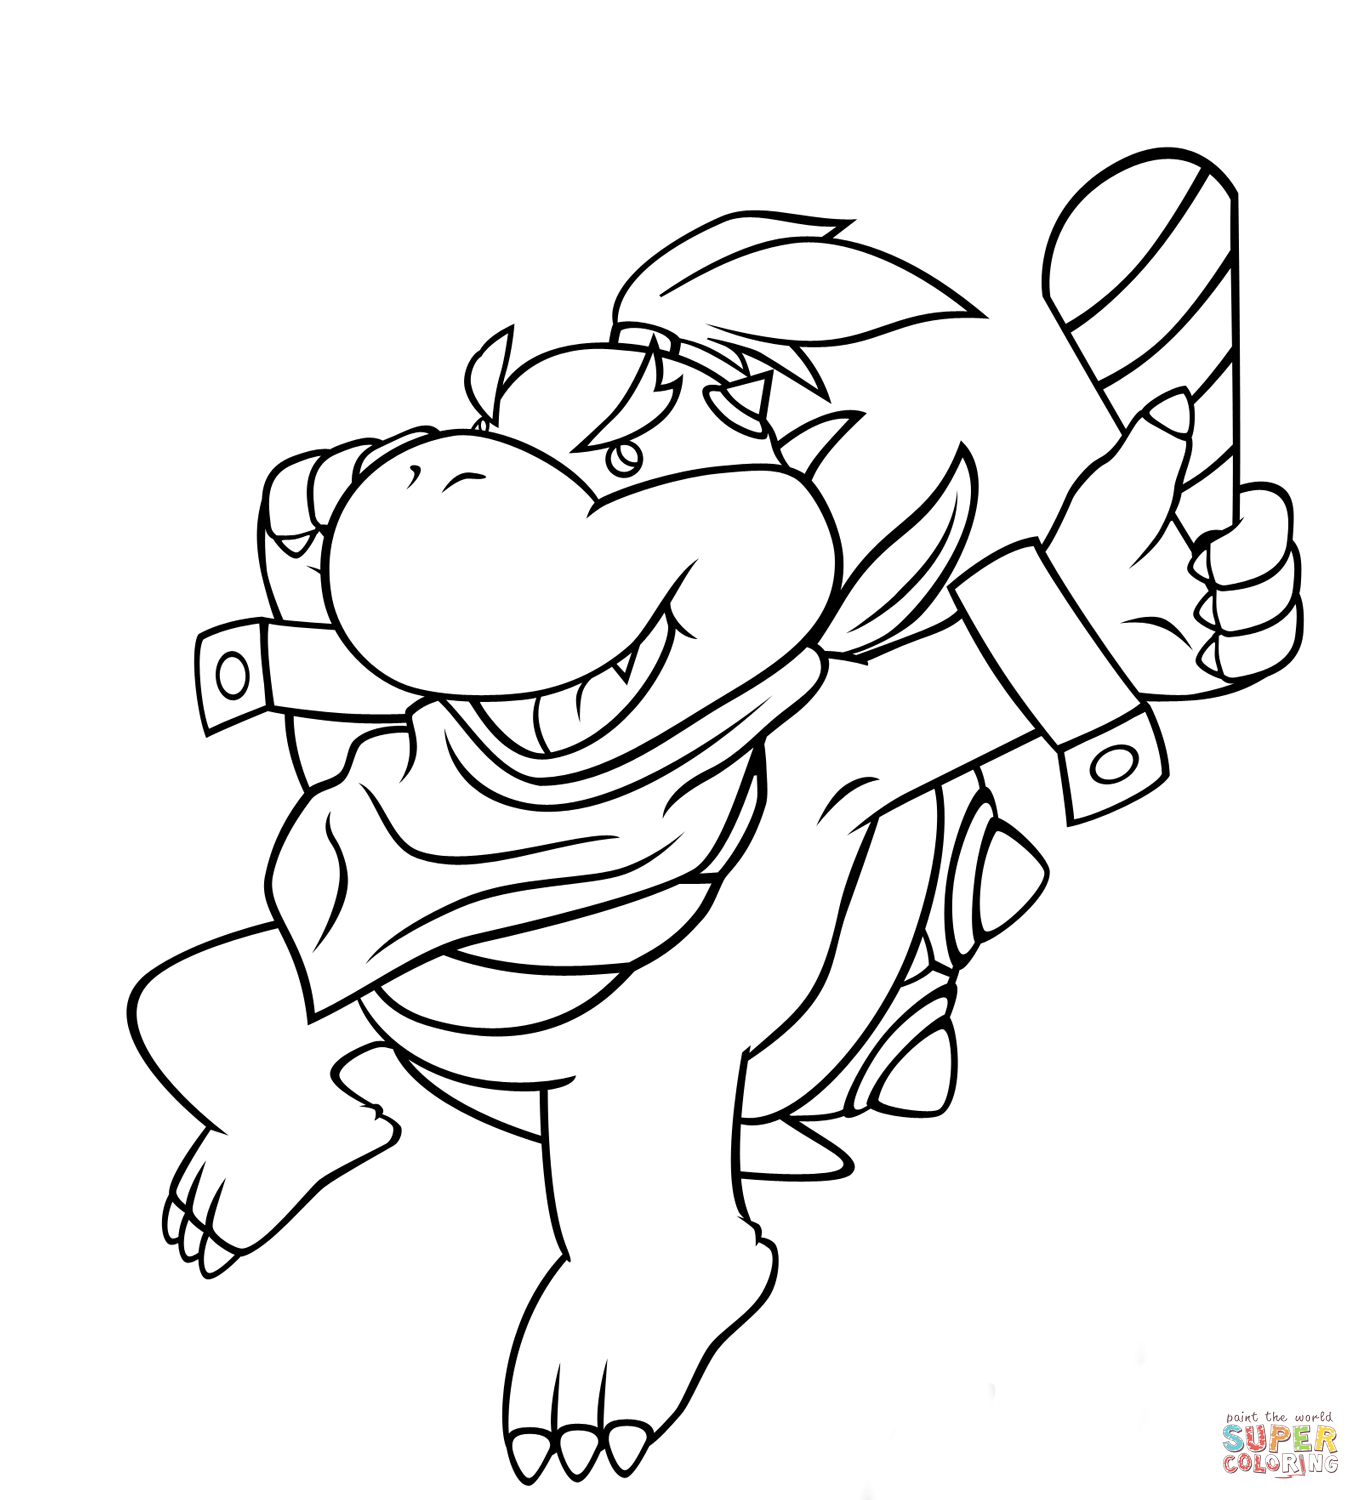 bowser colouring pages bowser coloring page coloring pages for free 2015 pages colouring bowser